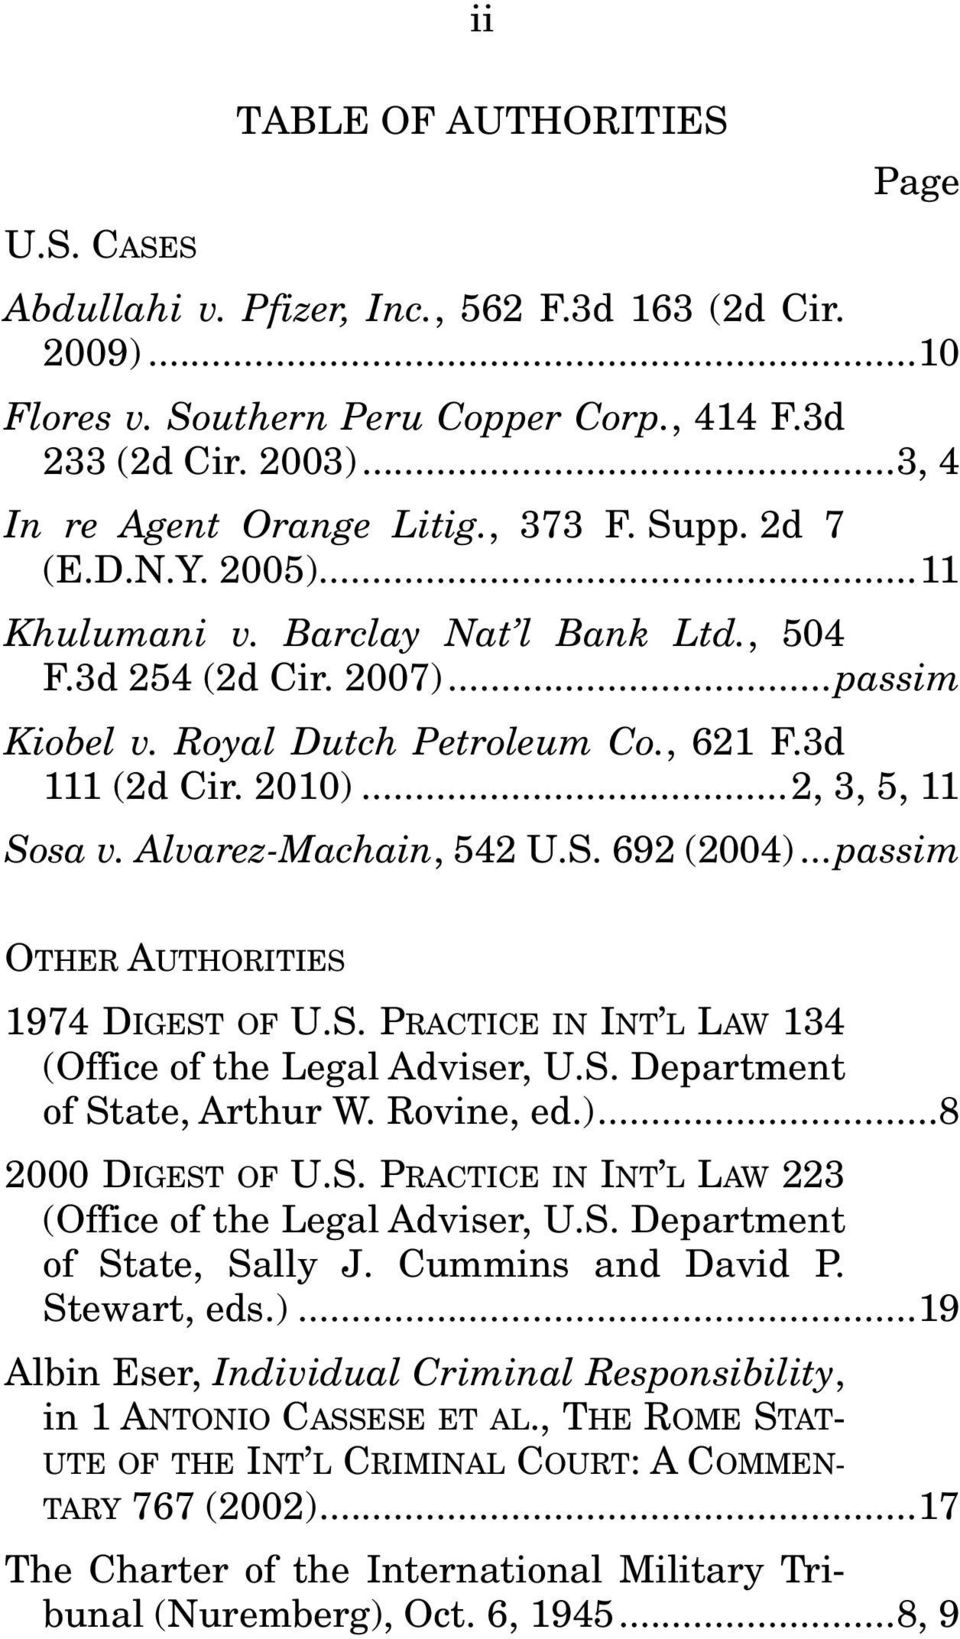 .. 2, 3, 5, 11 Sosa v. Alvarez-Machain, 542 U.S. 692 (2004)... passim OTHER AUTHORITIES 1974 DIGEST OF U.S. PRACTICE IN INT L LAW 134 (Office of the Legal Adviser, U.S. Department of State, Arthur W.